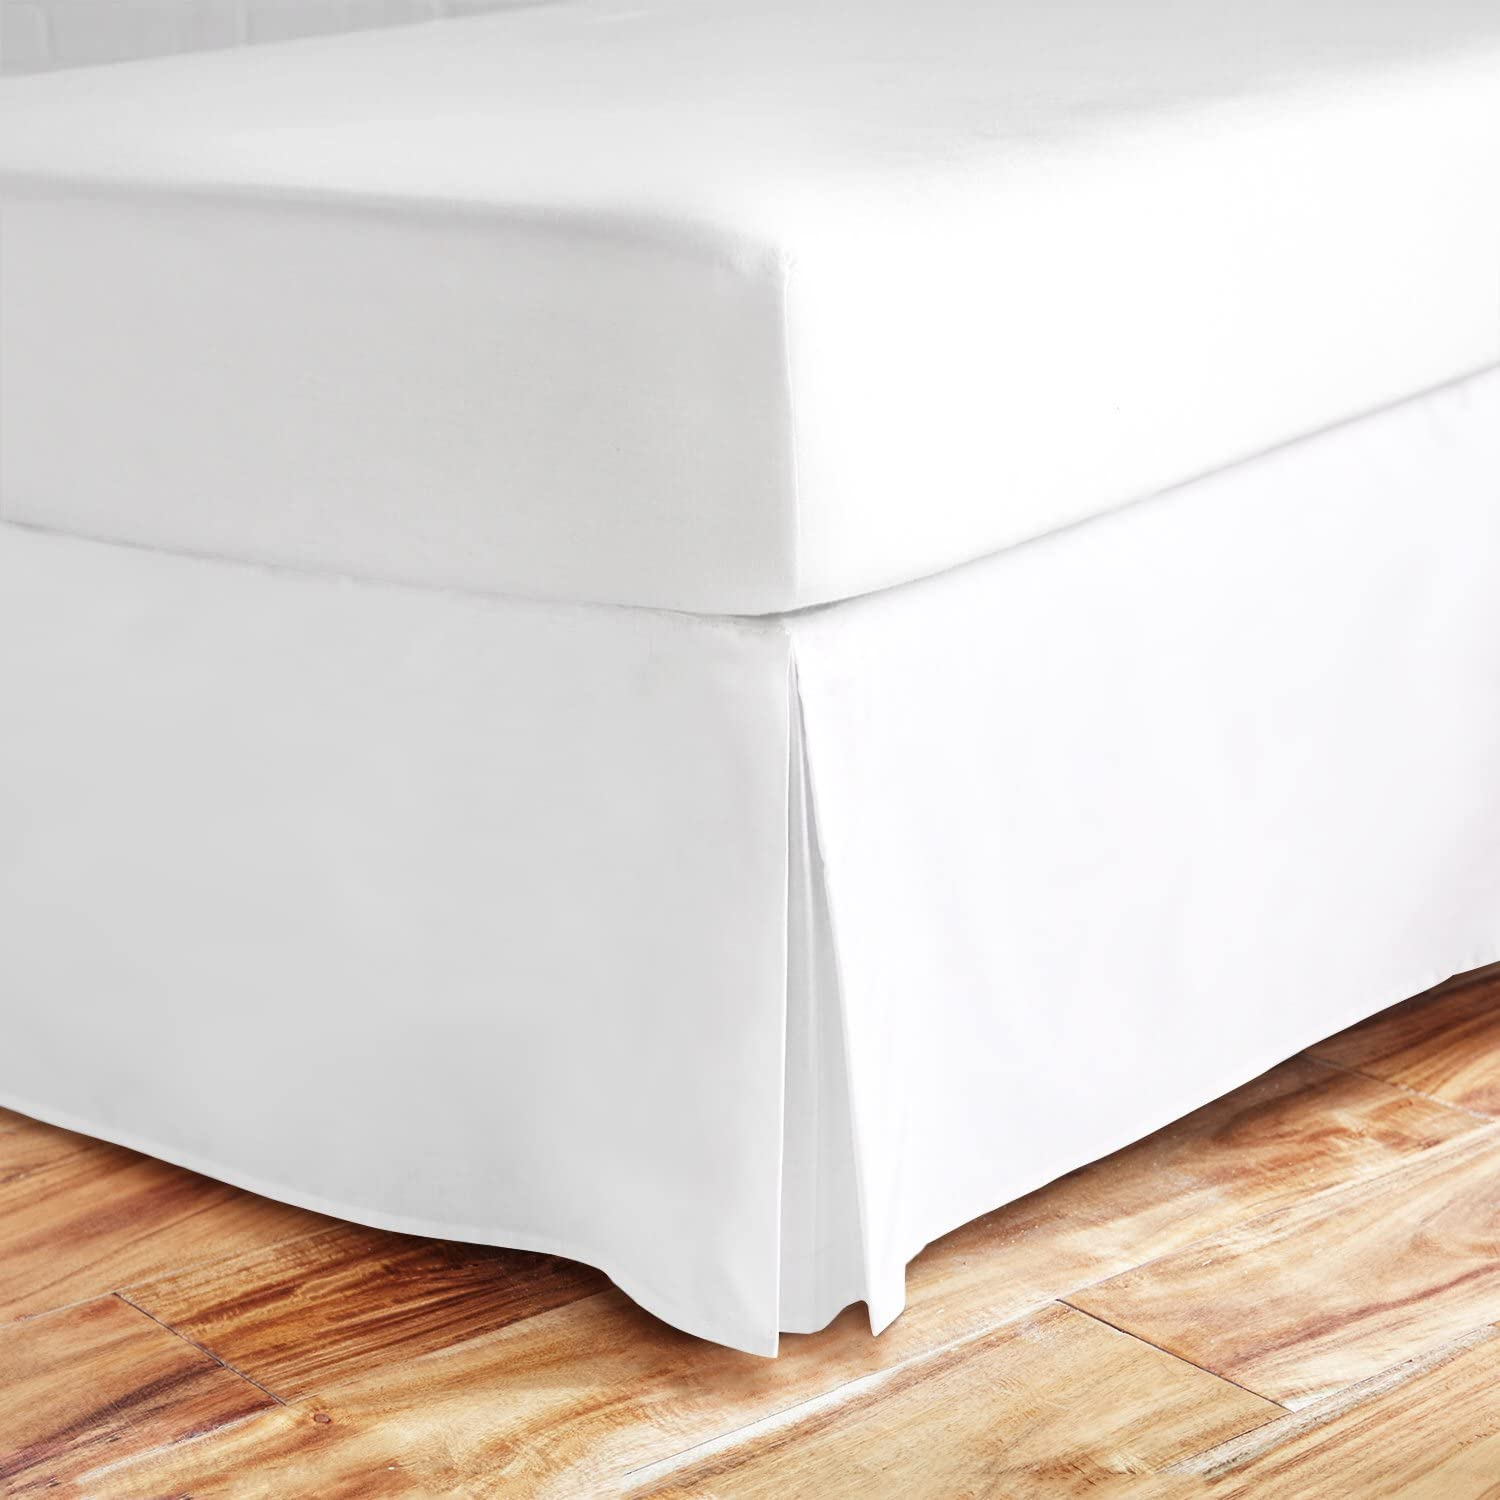 Zen Bamboo Ultra Soft Bed Skirt - Premium, Eco-friendly, Hypoallergenic, and Wrinkle Resistant Rayon Derived From Bamboo Dust Ruffle with 15-inch Drop - Twin - White